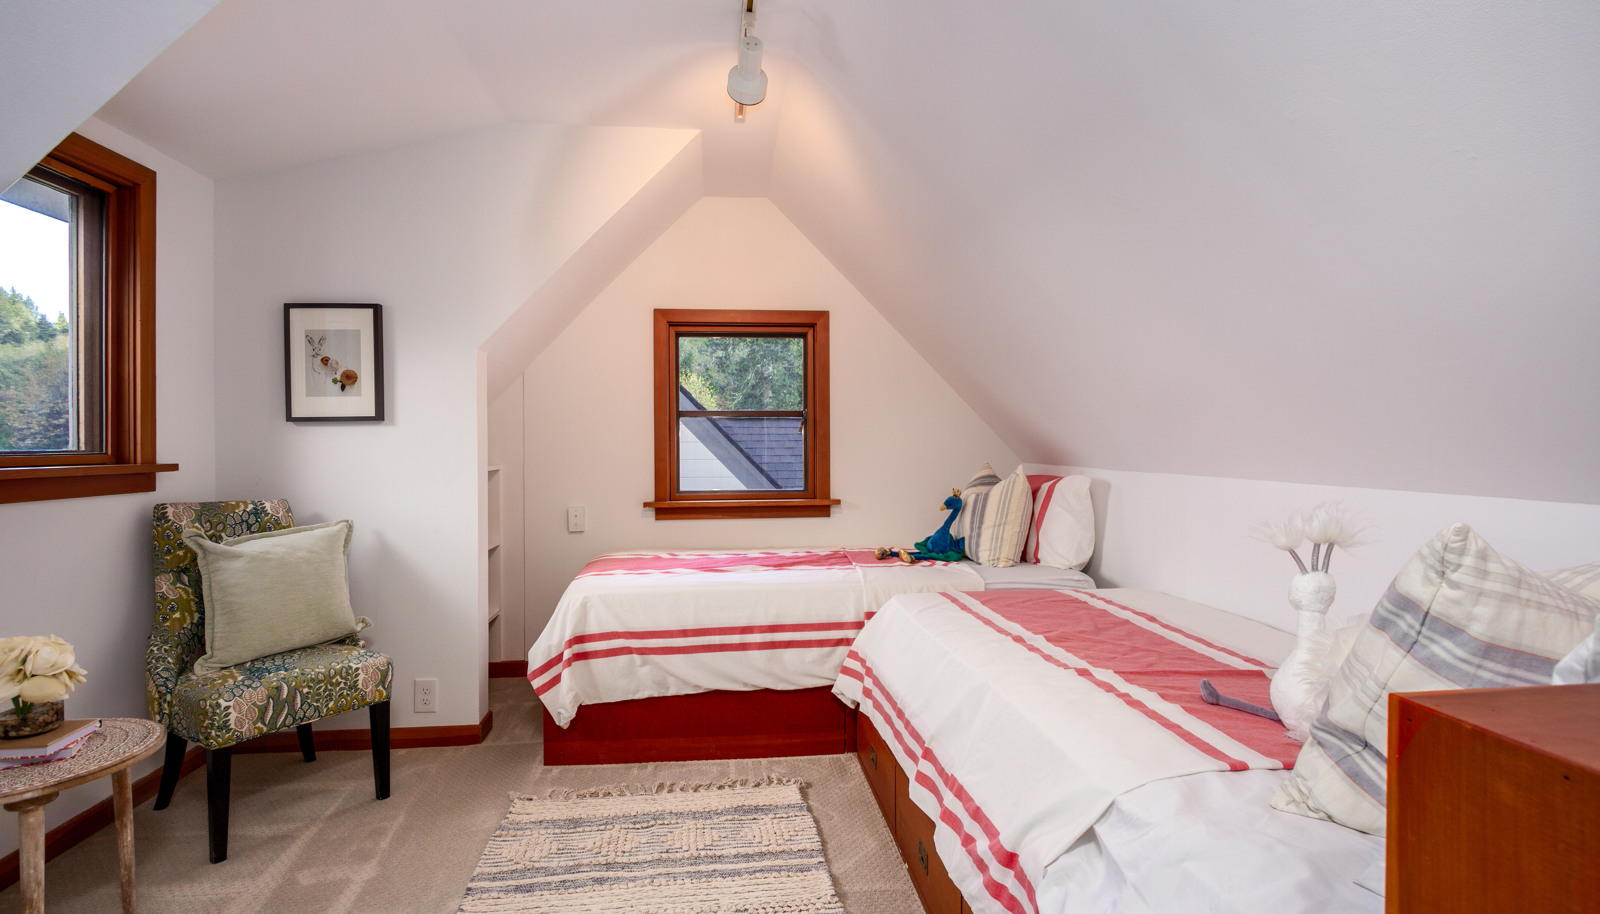 One of two upstairs bedrooms, served by a full bathroom.